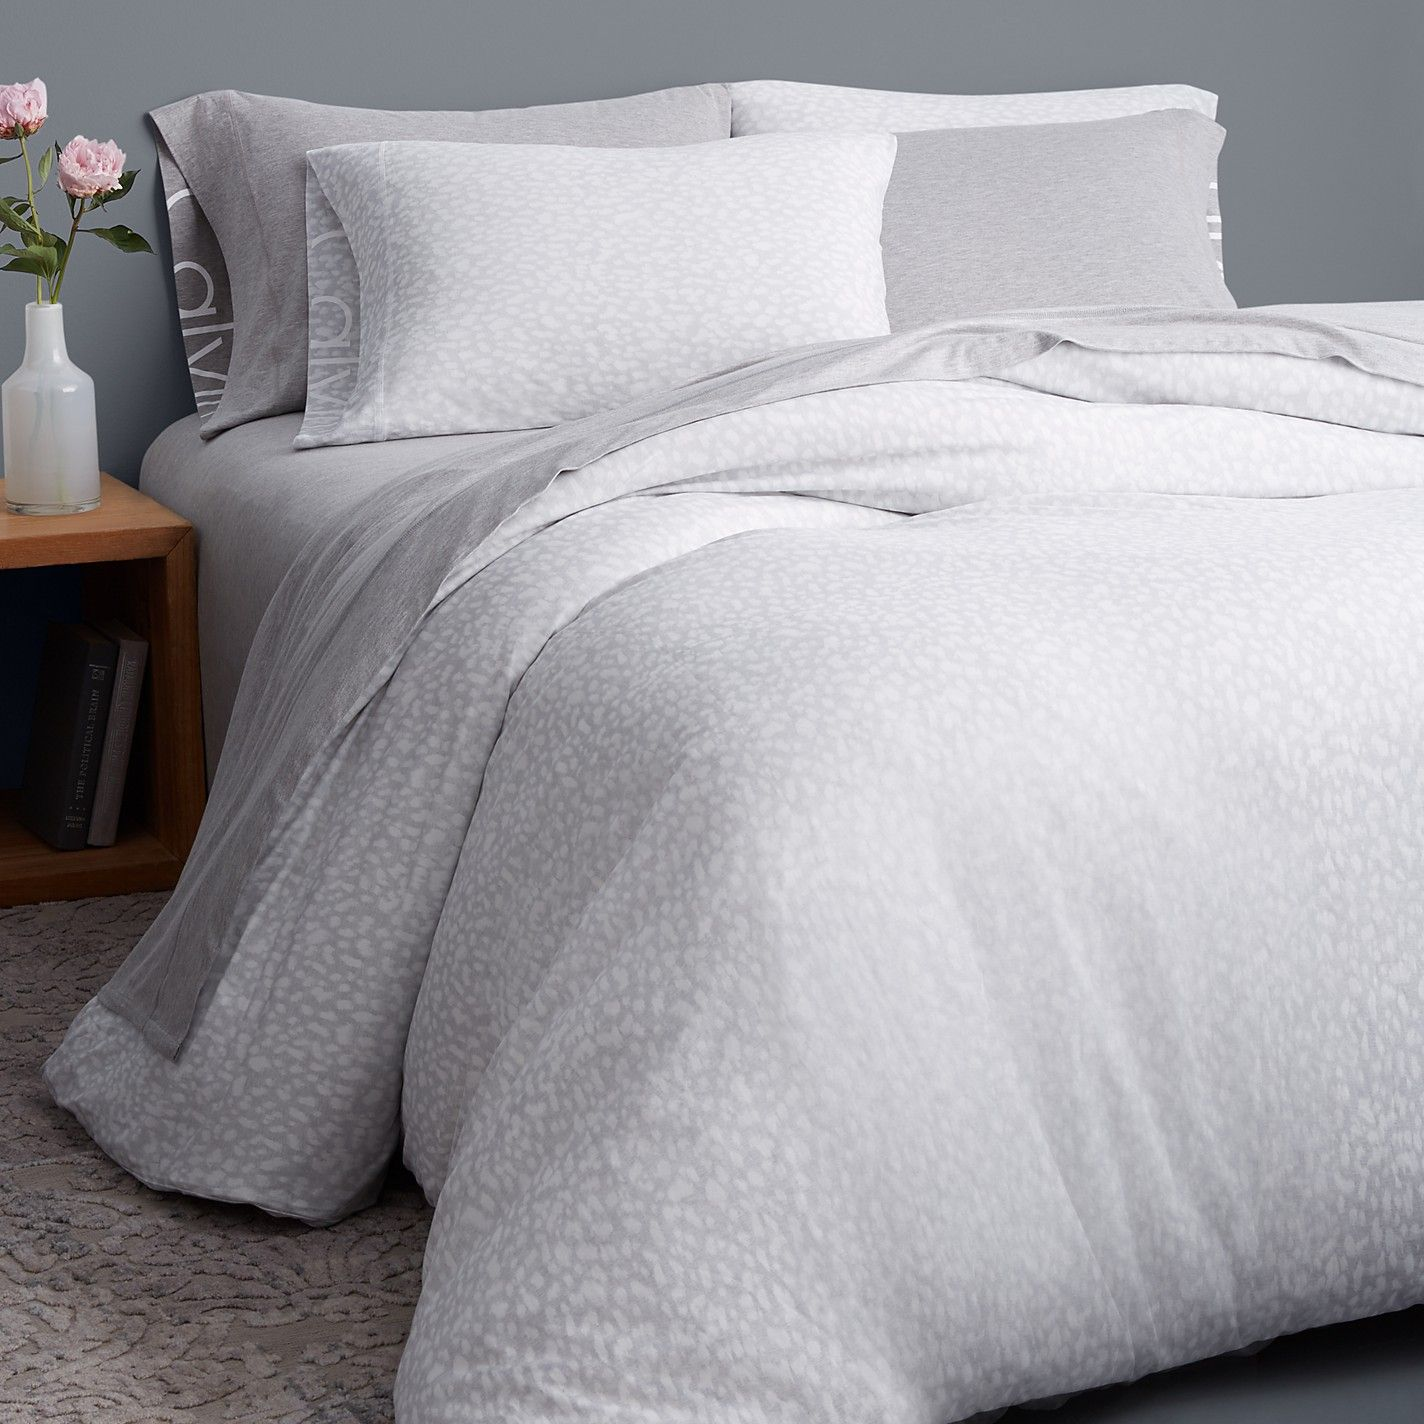 Inspired By Calvin Klein Underwear Prints This Soft Cotton And Modal Jersey Duvet Cover Features